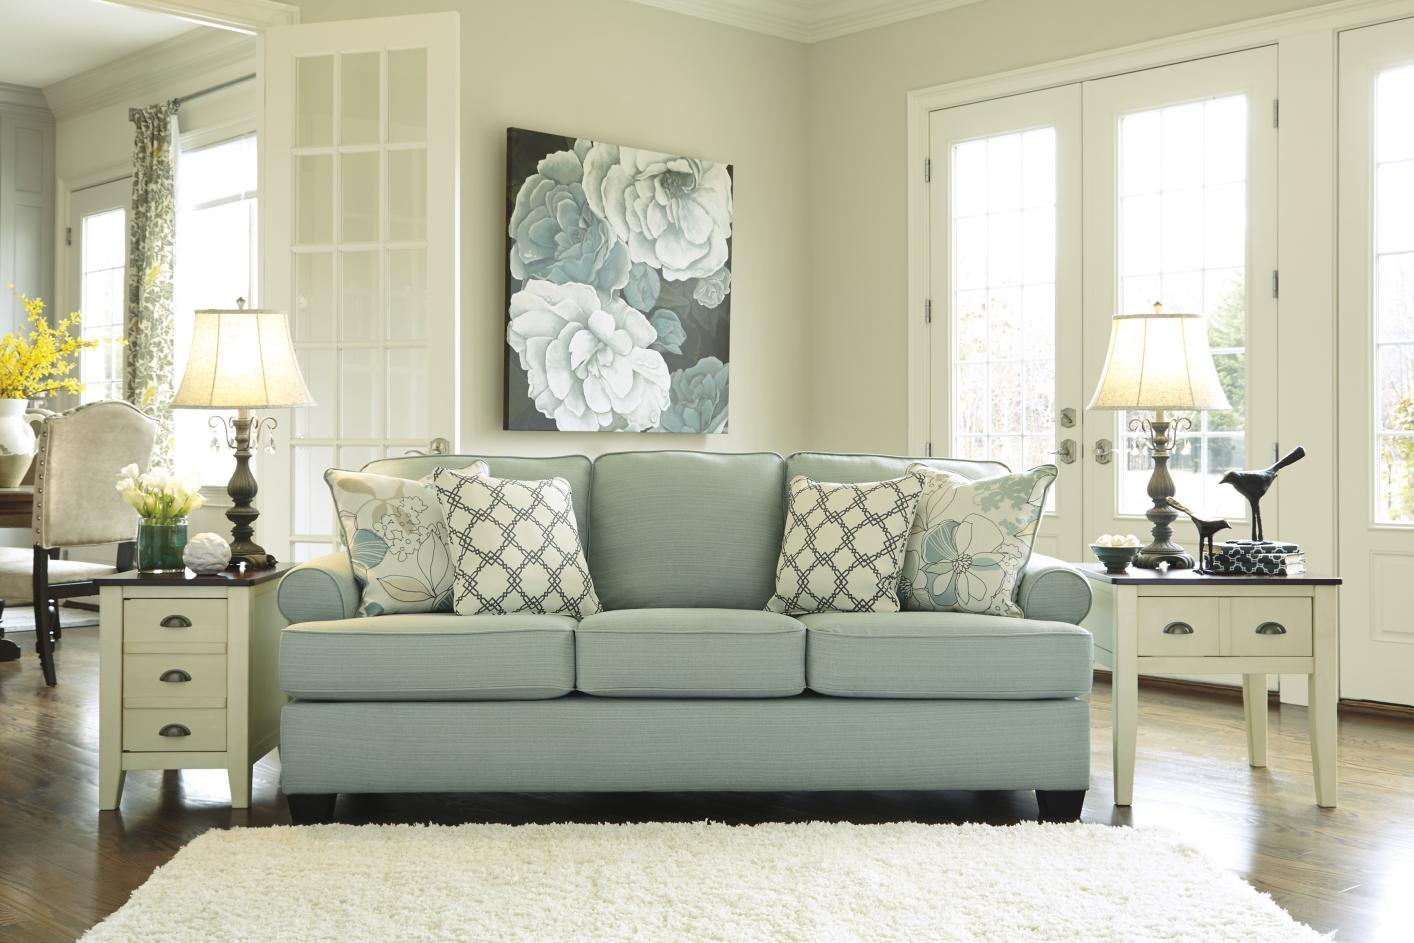 Ordinaire Daystar Seafoam Green Fabric Sofa